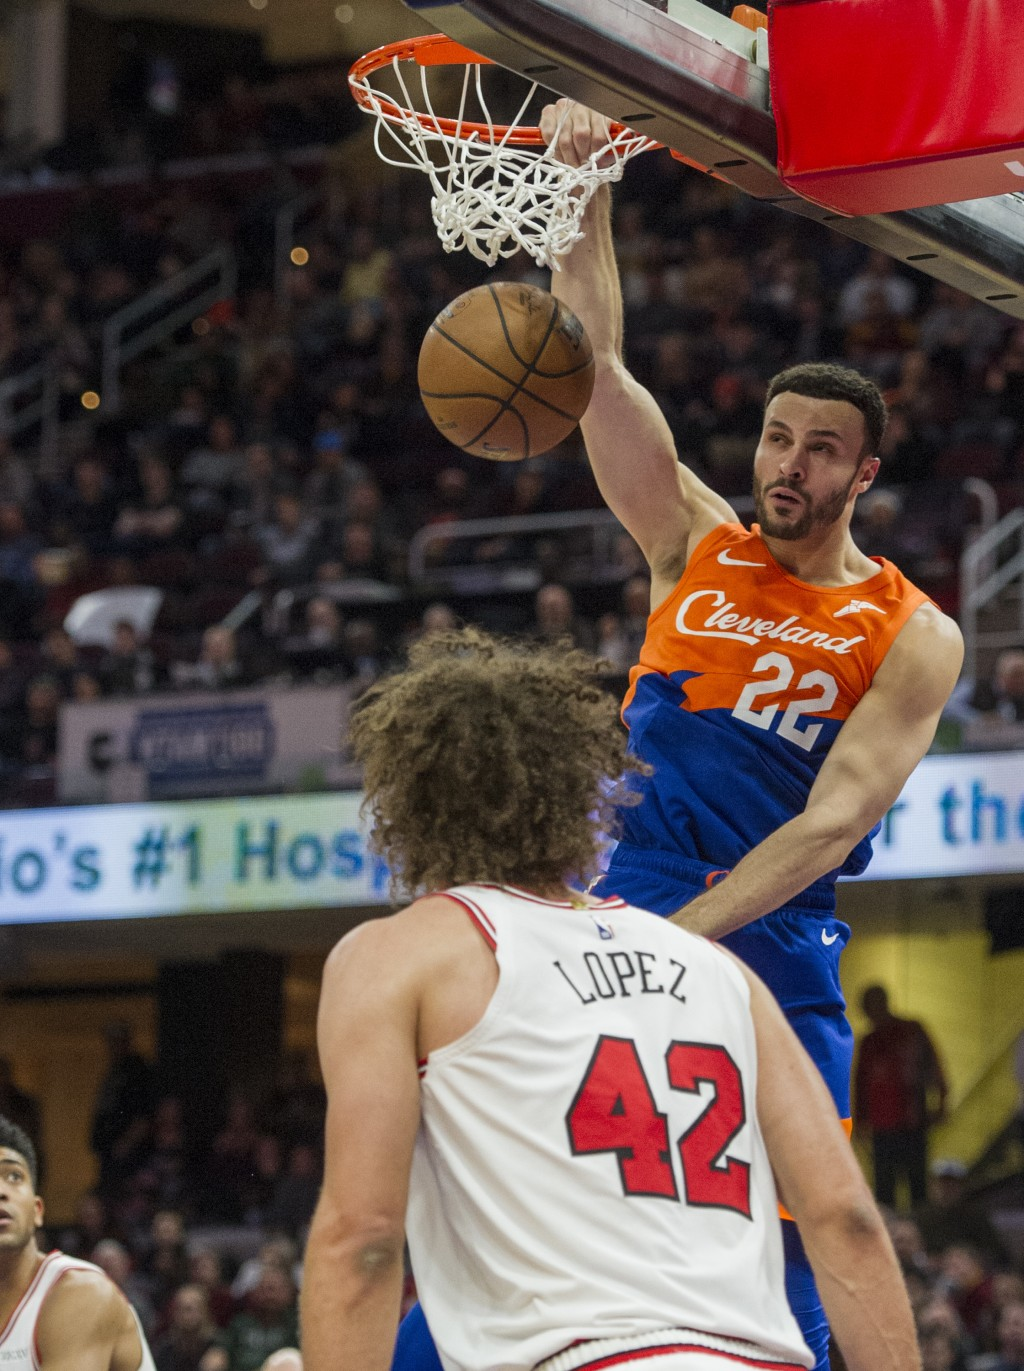 Cleveland Cavaliers' Larry Nance Jr. (22) dunks against the Chicago Bulls during the first half of an NBA basketball game in Cleveland, Sunday, Dec. 2